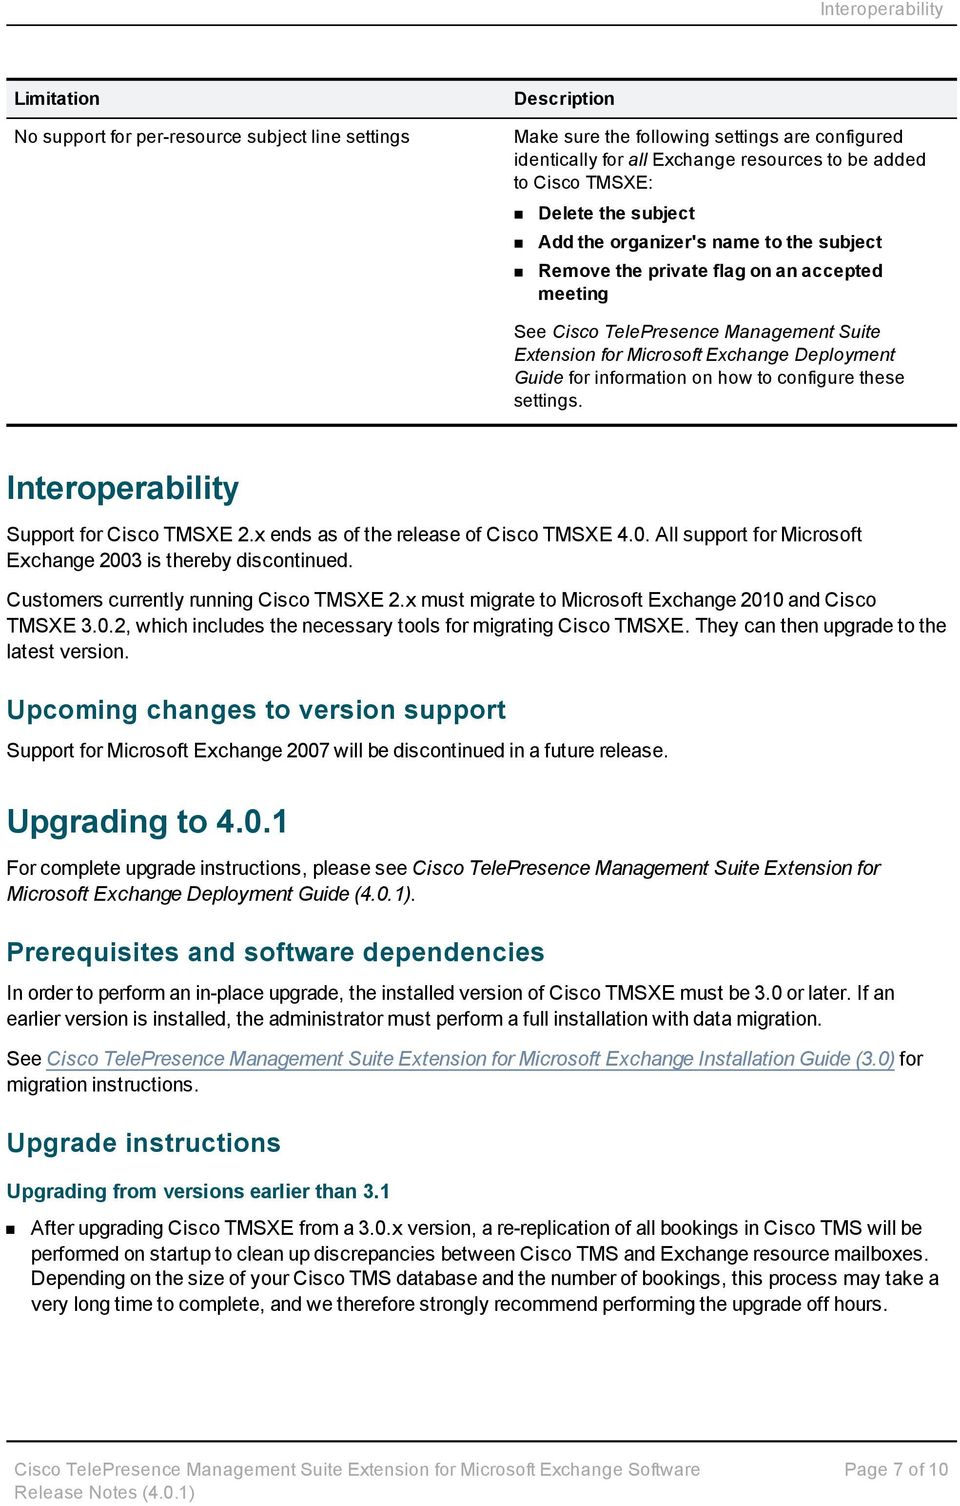 information on how to configure these settings. Interoperability Support for Cisco TMSXE 2.x ends as of the release of Cisco TMSXE 4.0. All support for Microsoft Exchange 2003 is thereby discontinued.